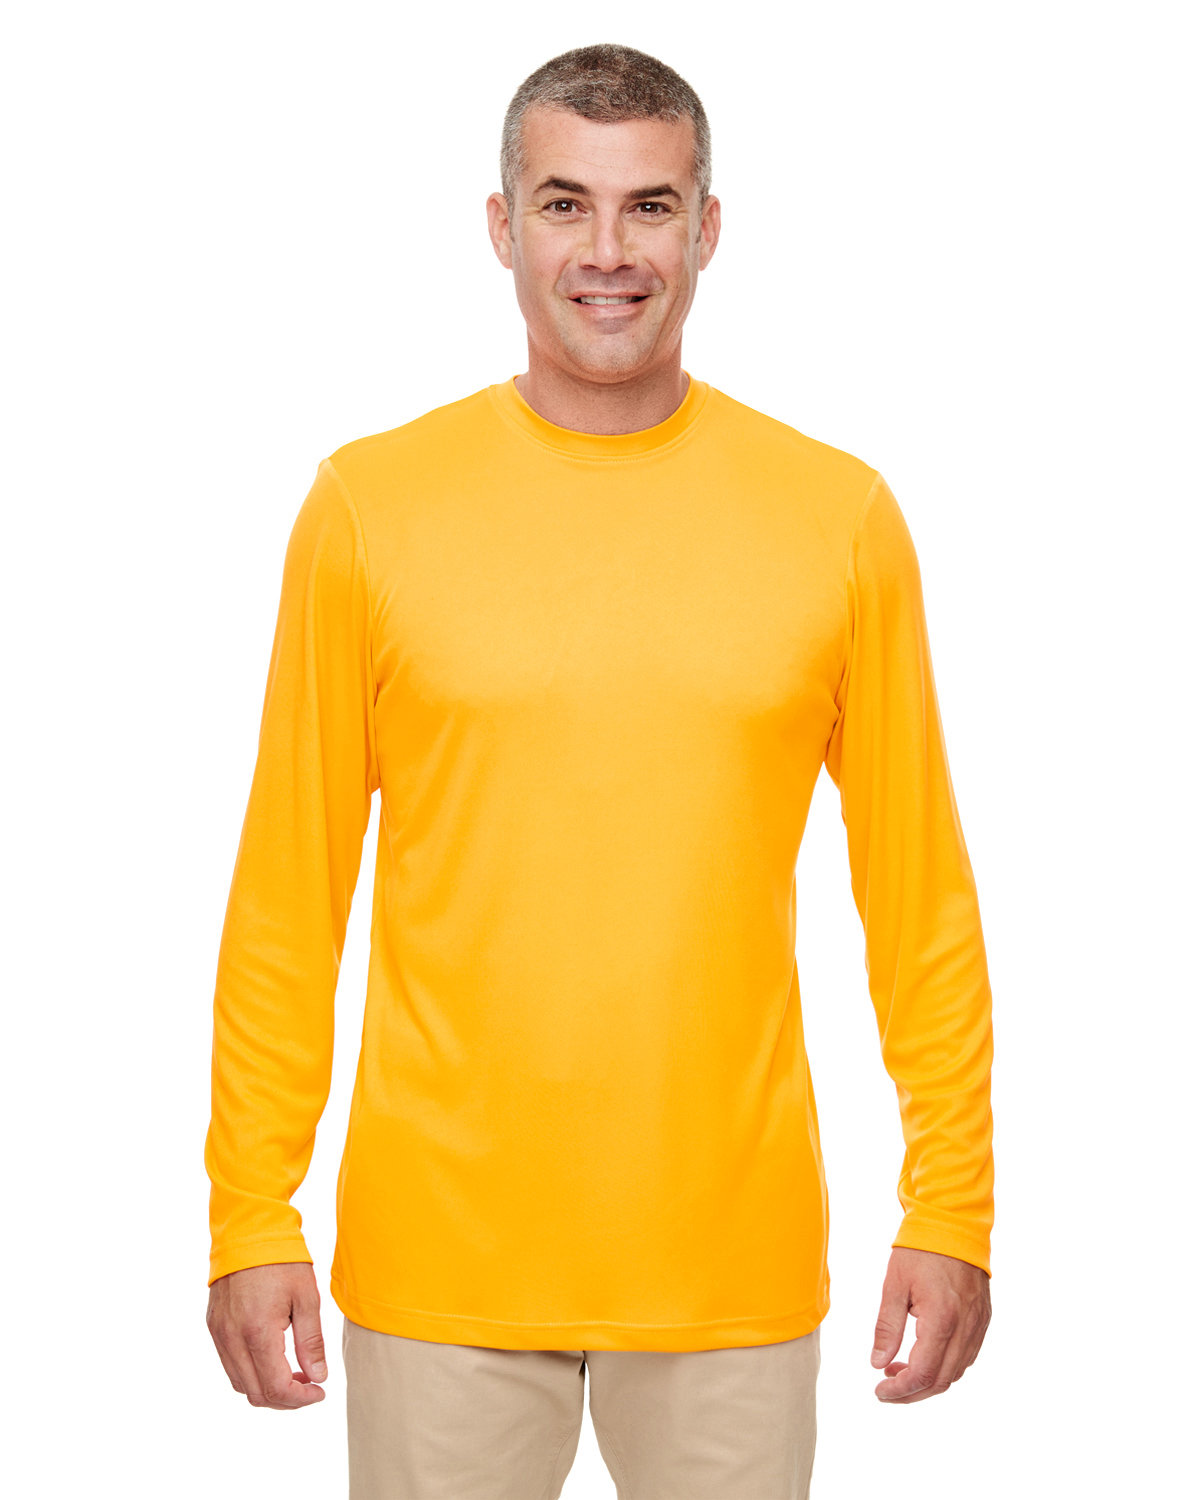 UltraClub Men's Cool & Dry Performance Long-Sleeve Top GOLD